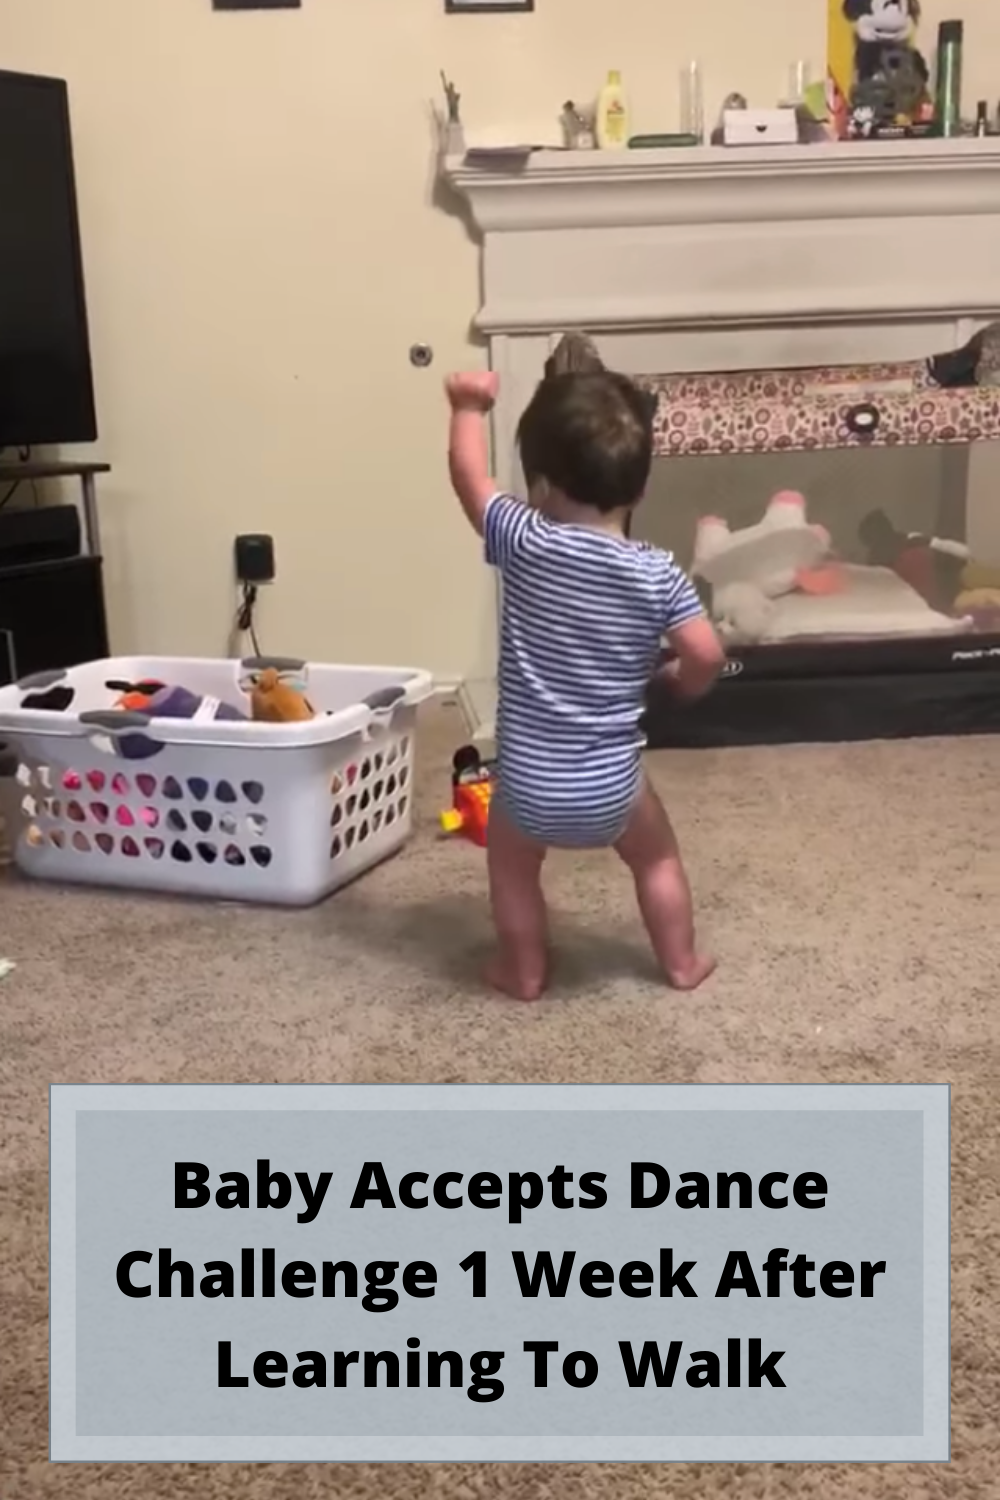 Baby Accepts Dance Challenge 1 Week After Learning To Walk Challenges Dance Learning